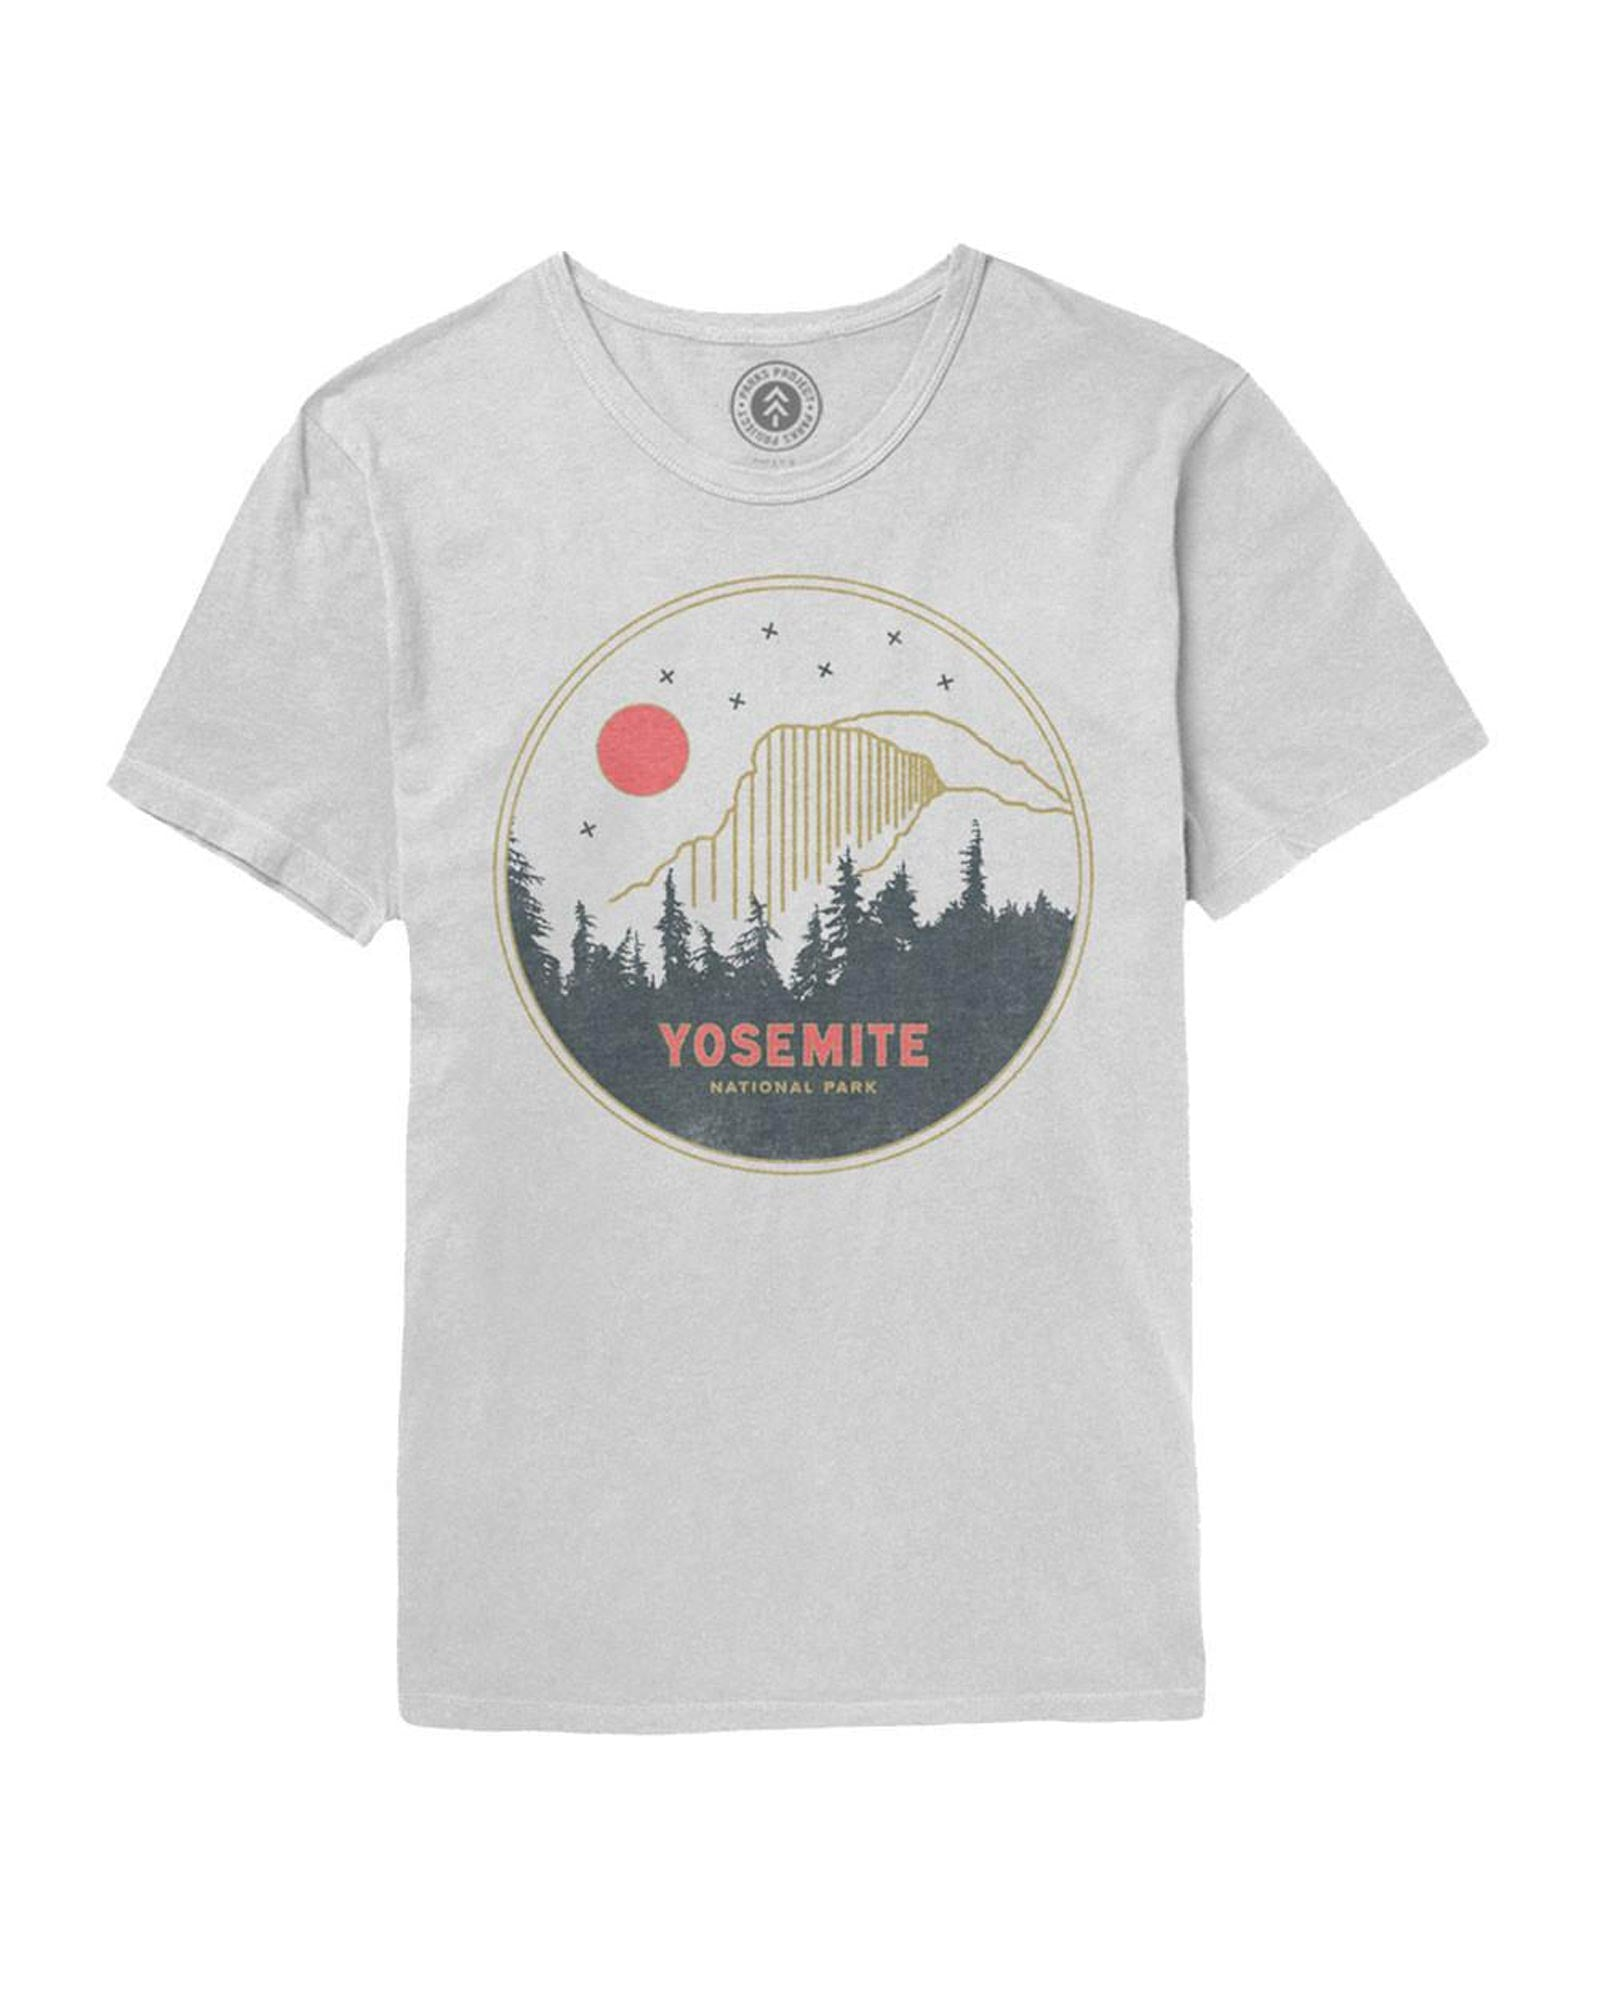 Yosemite National Park Vintage Mod Dome Tee | Parks Project | National Park Gift Shop Tee